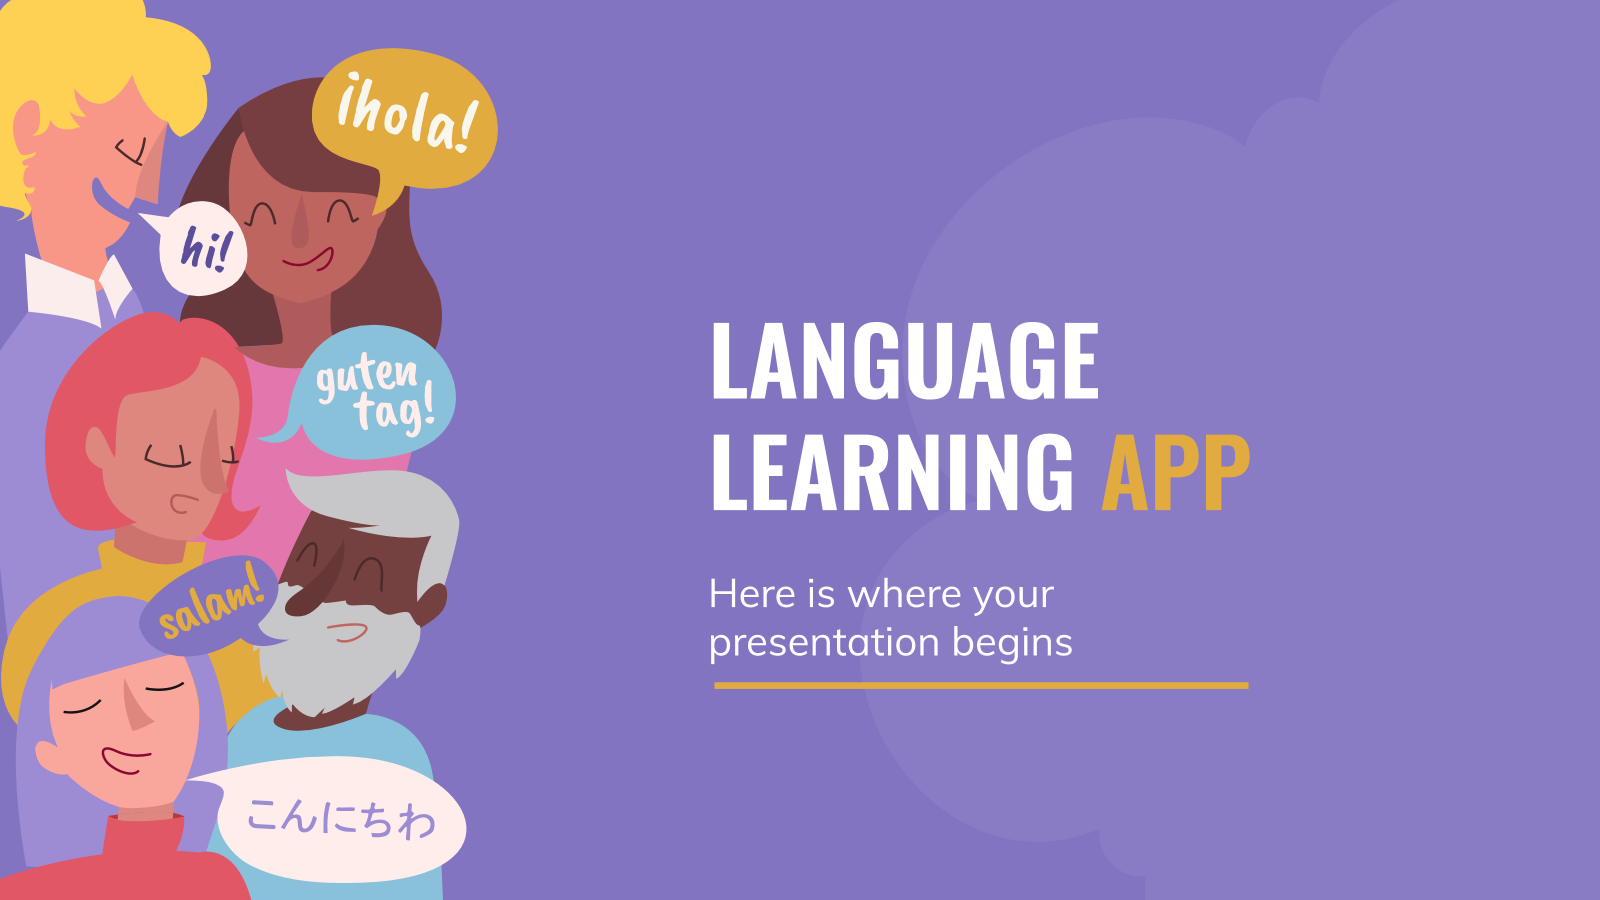 Language Learning App Pitch Deck presentation template